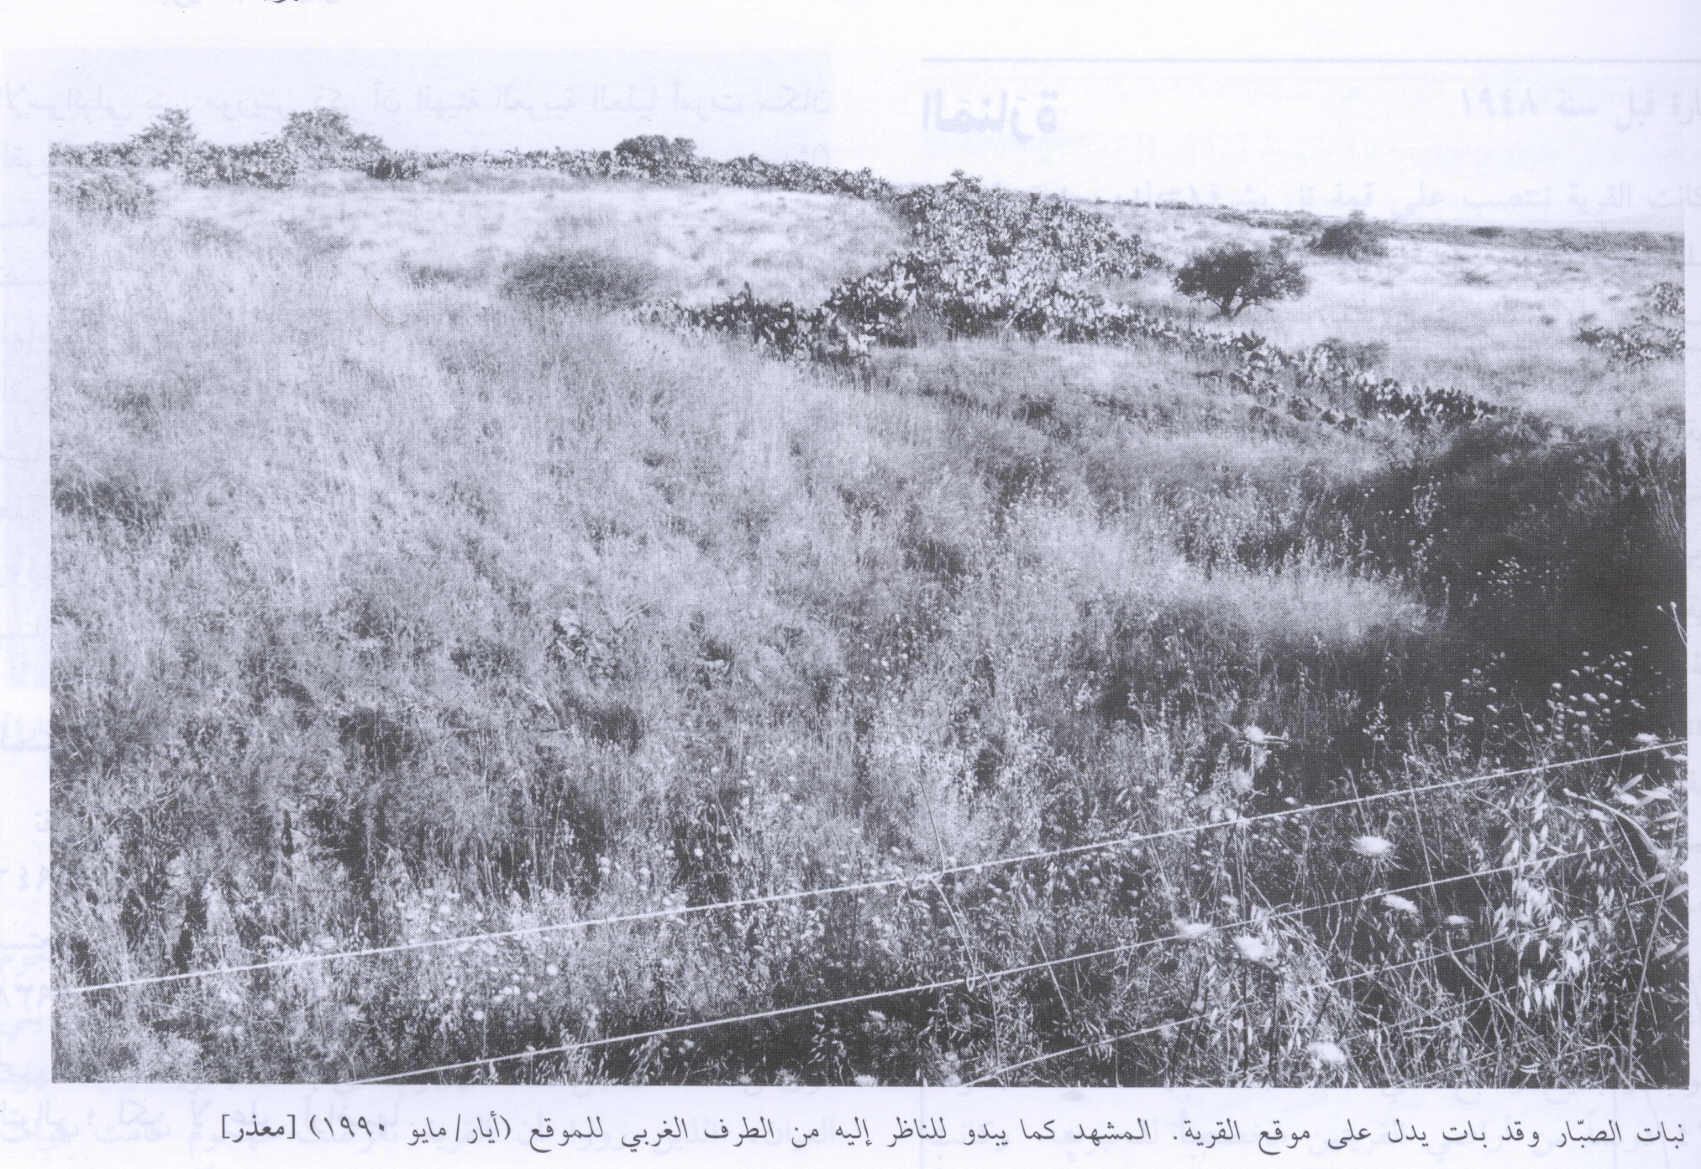 Ma'dhar - معذر : A view of the village site from the western edges of the village, 1990